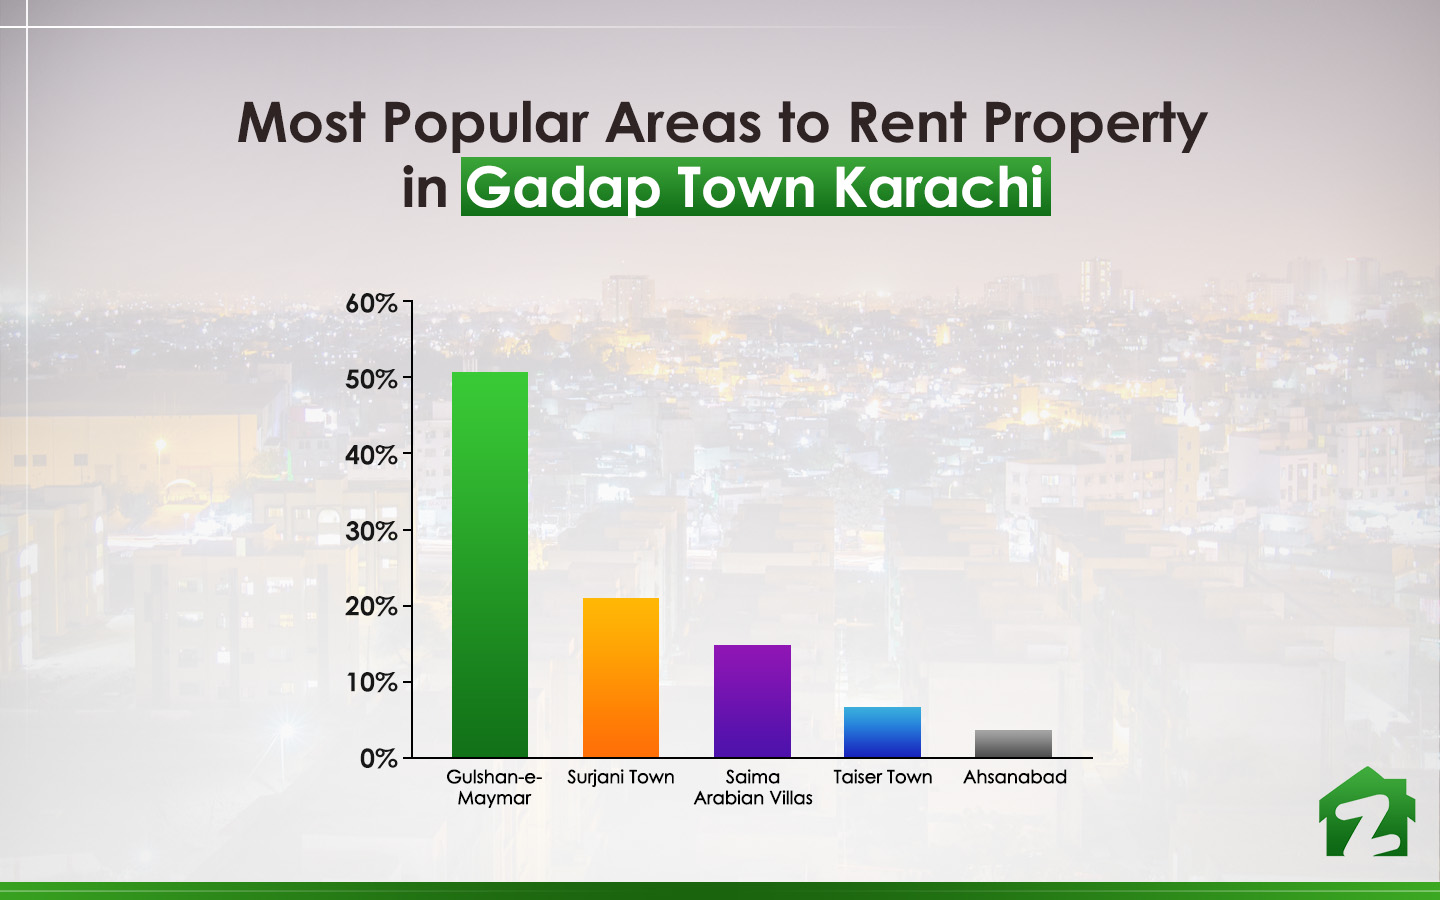 Top 5 areas to rent property in Gadap Town